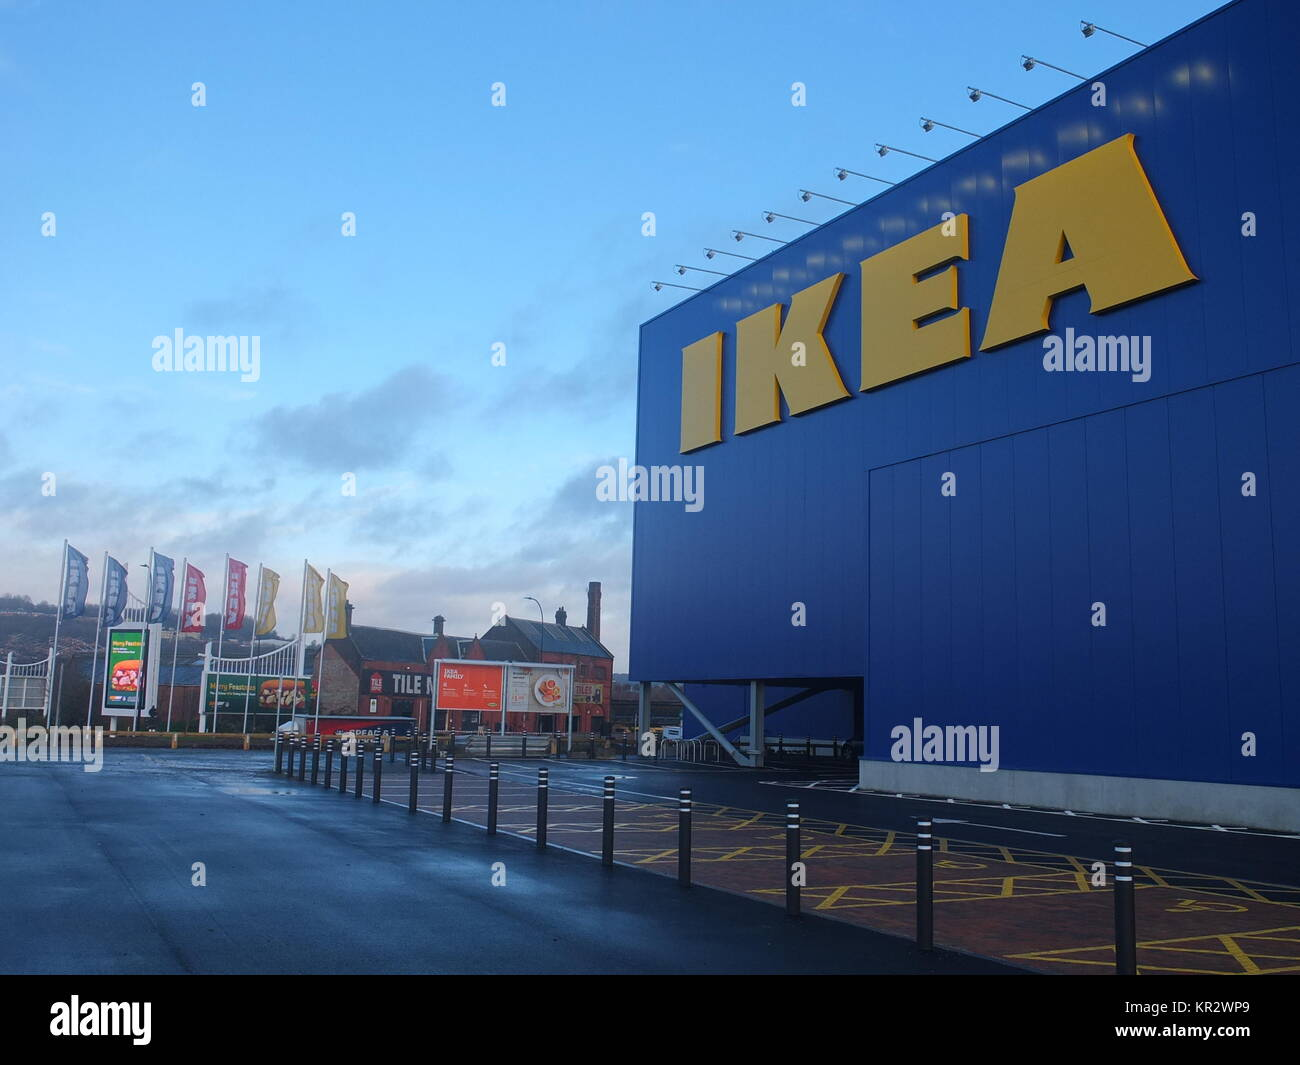 Exterior Of New Ikea Store In Sheffield Opened In 2017